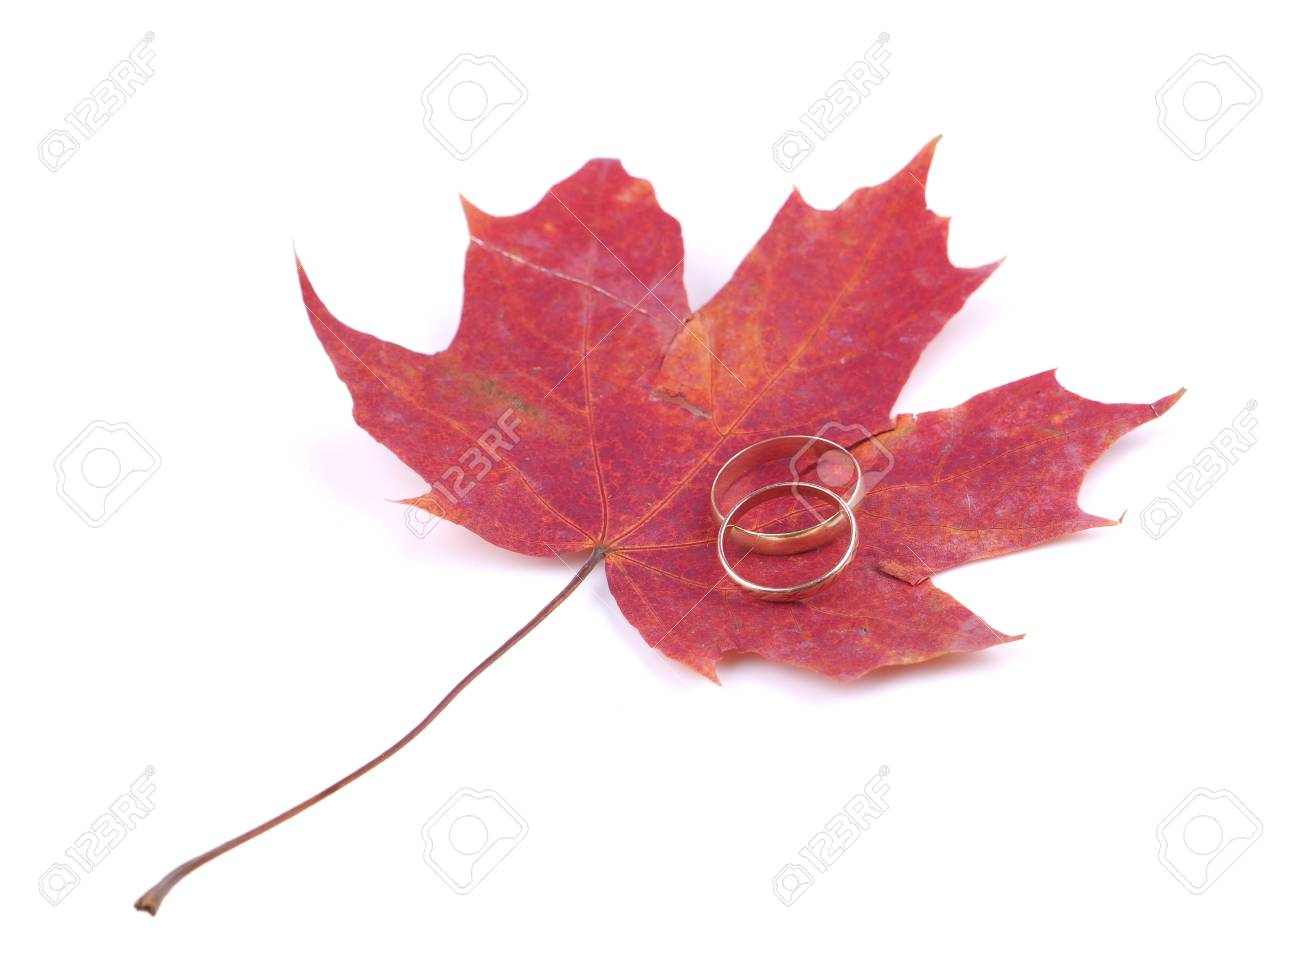 Wedding Rings And Maple Leaves On A White Background Stock Photo ...